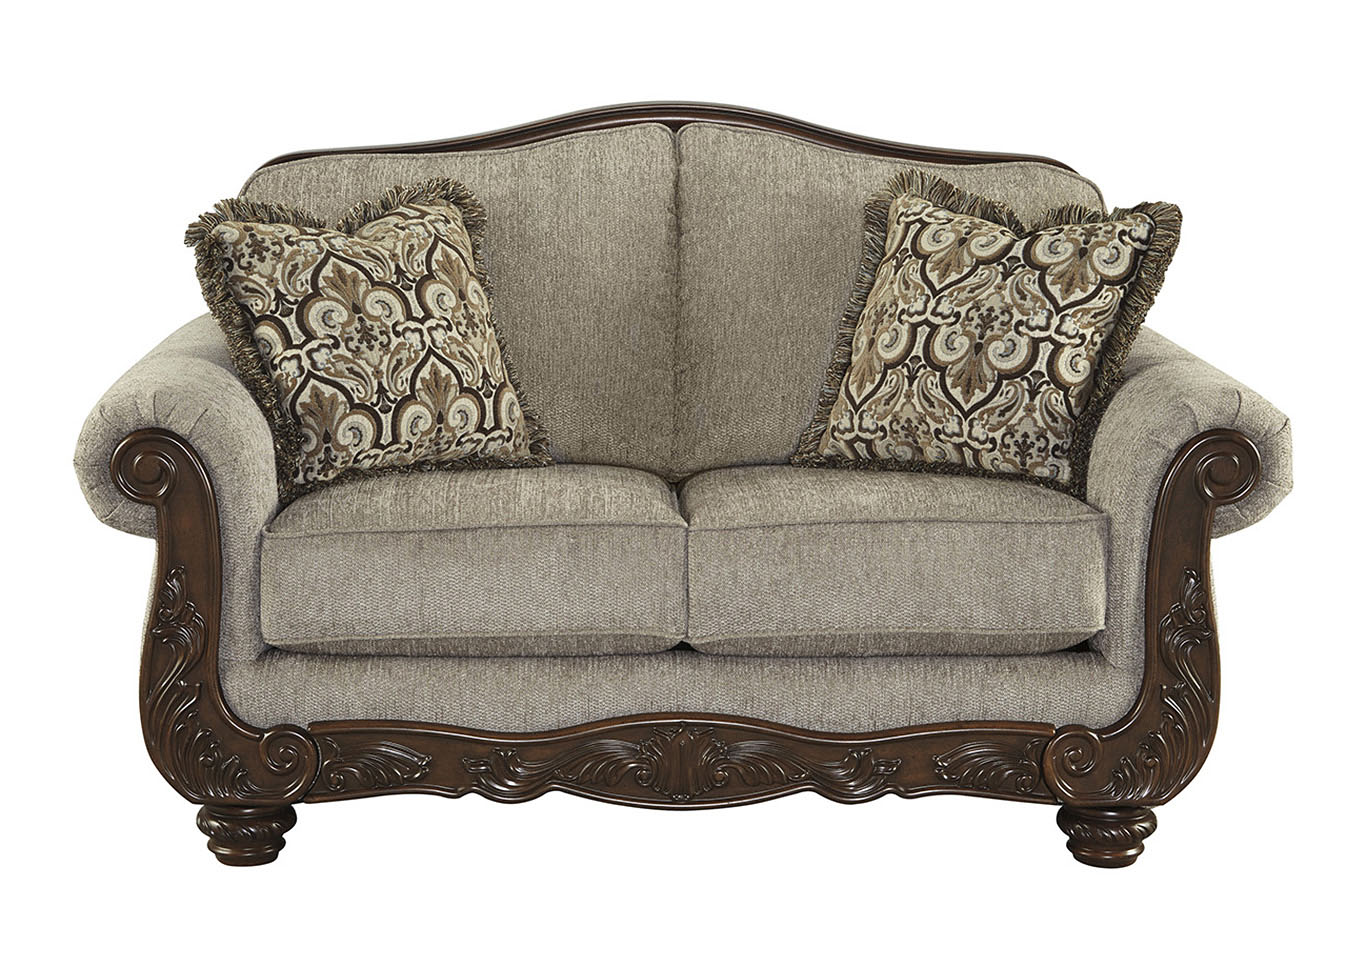 Cecilyn Cocoa Loveseat,Signature Design By Ashley